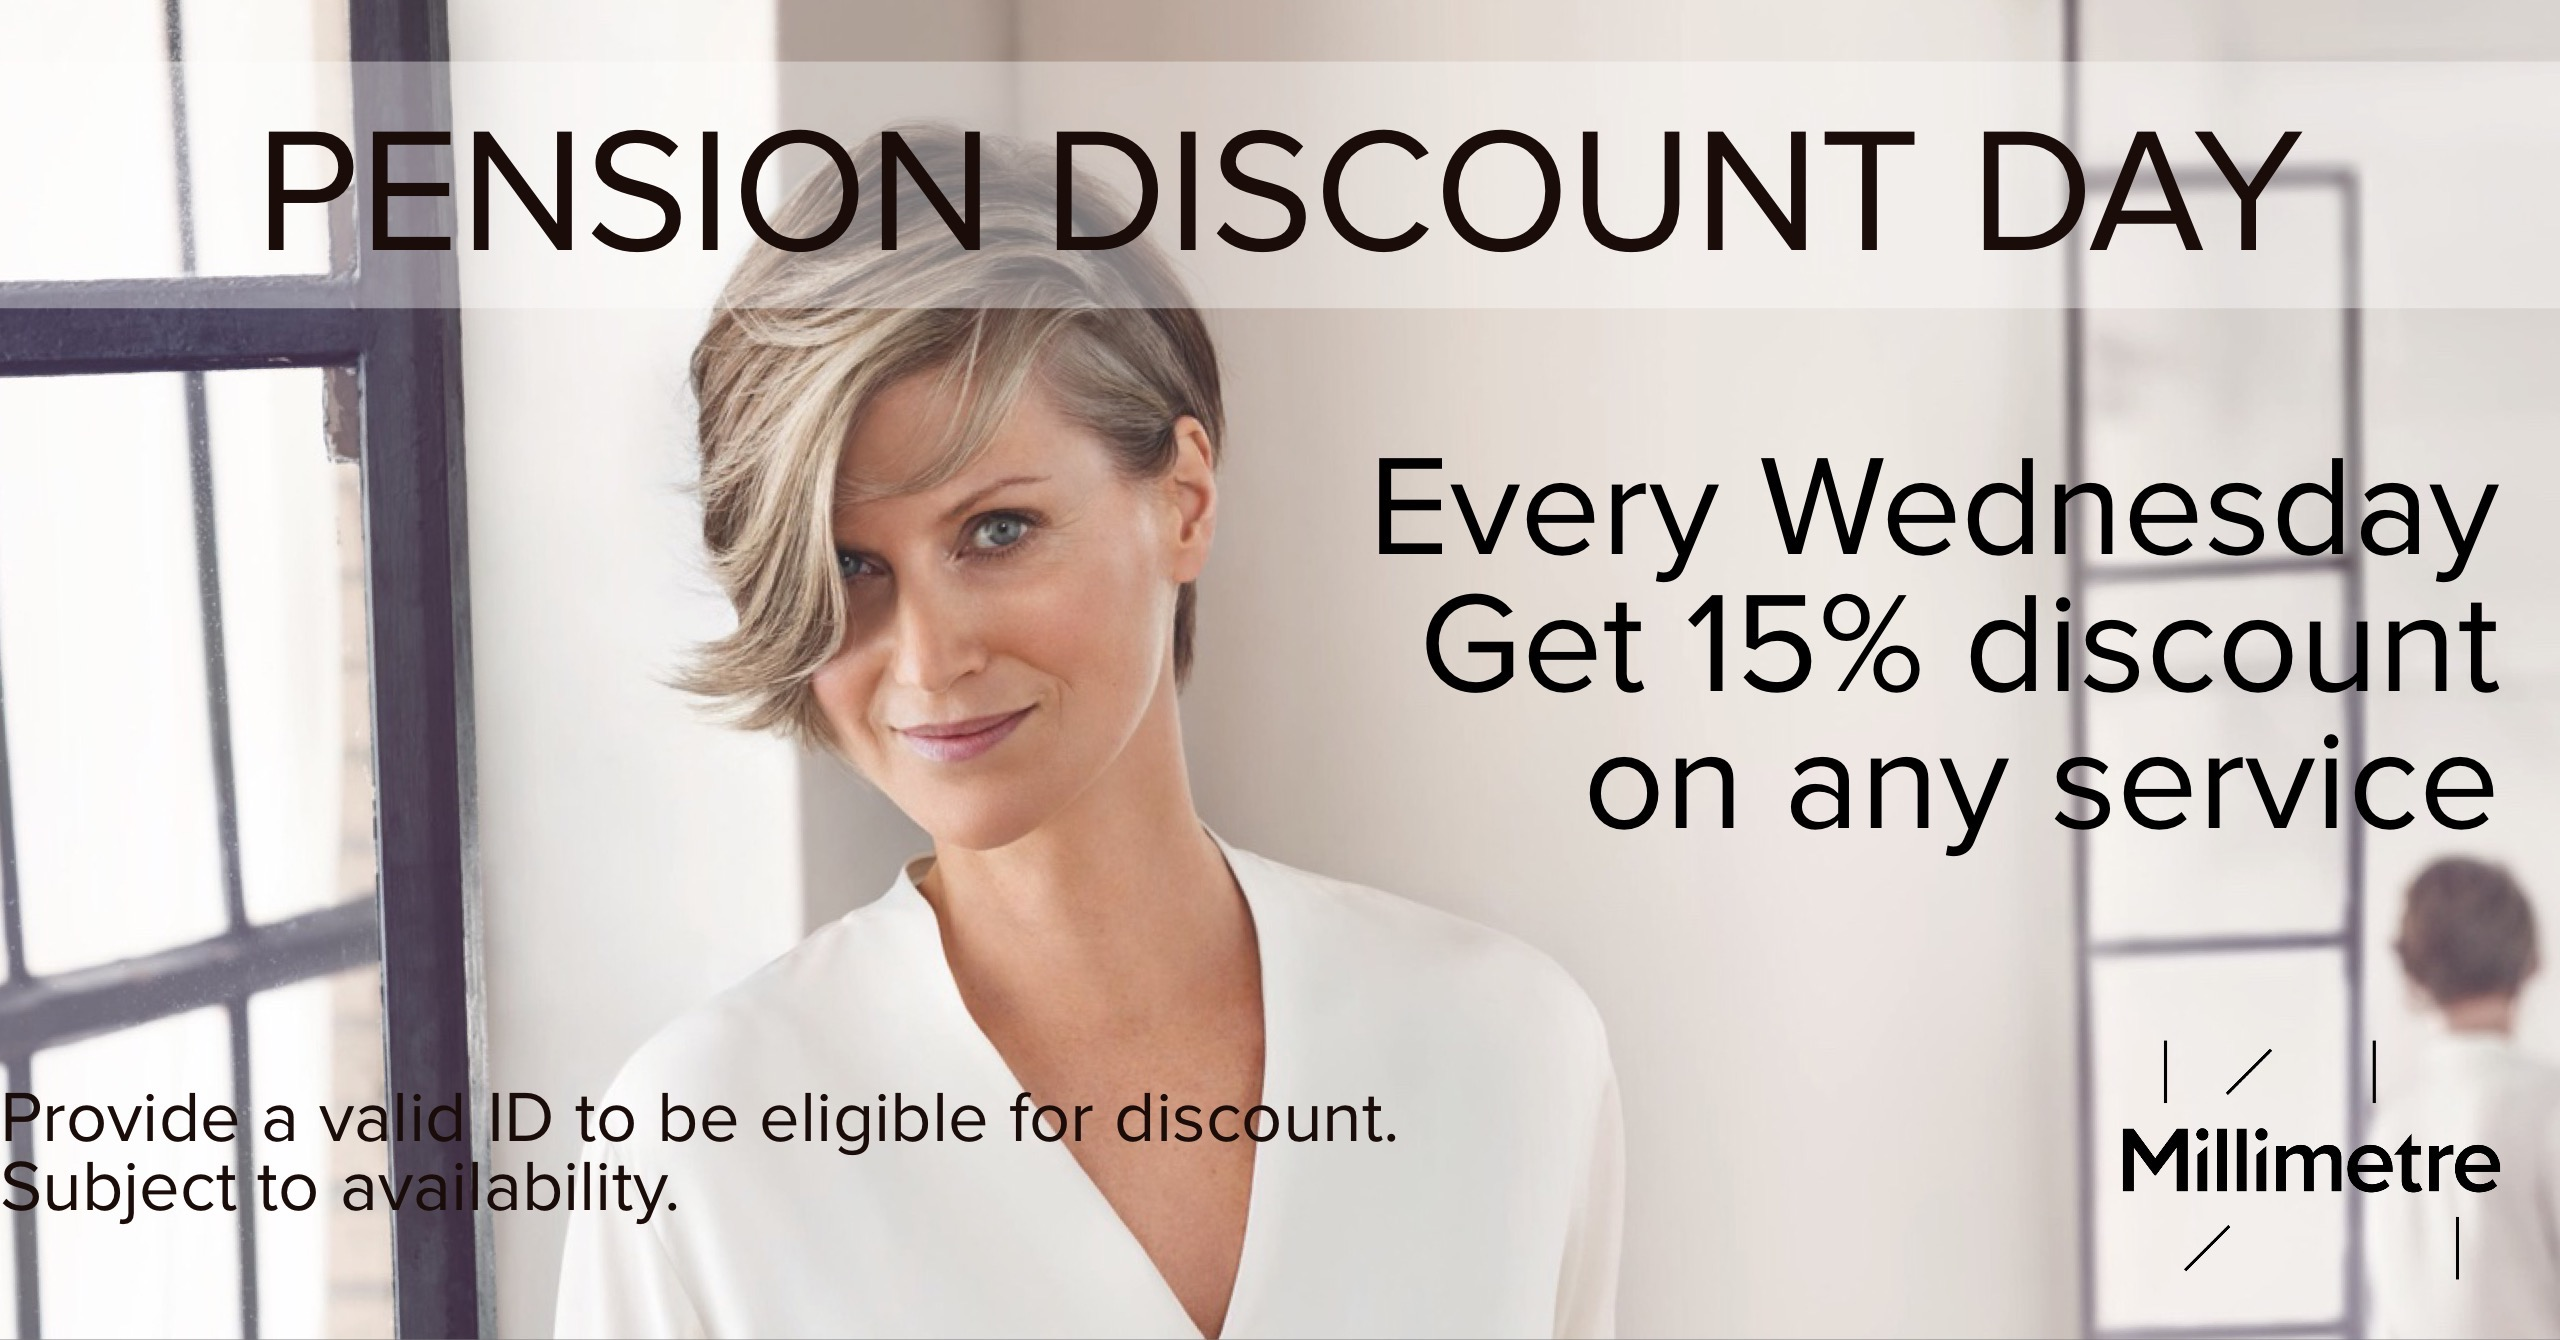 Pension Discount Day